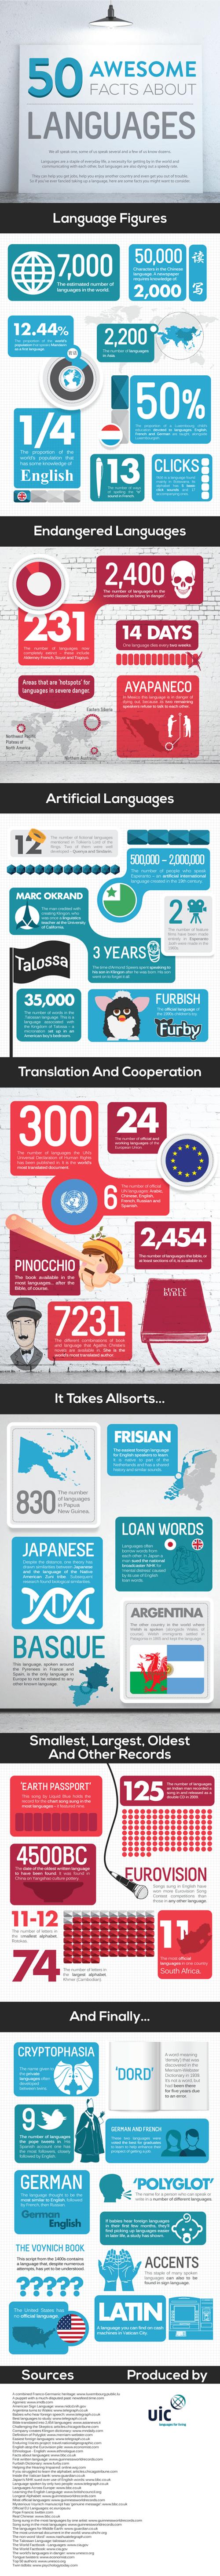 50 Awesome Facts About Languages [Infographic]